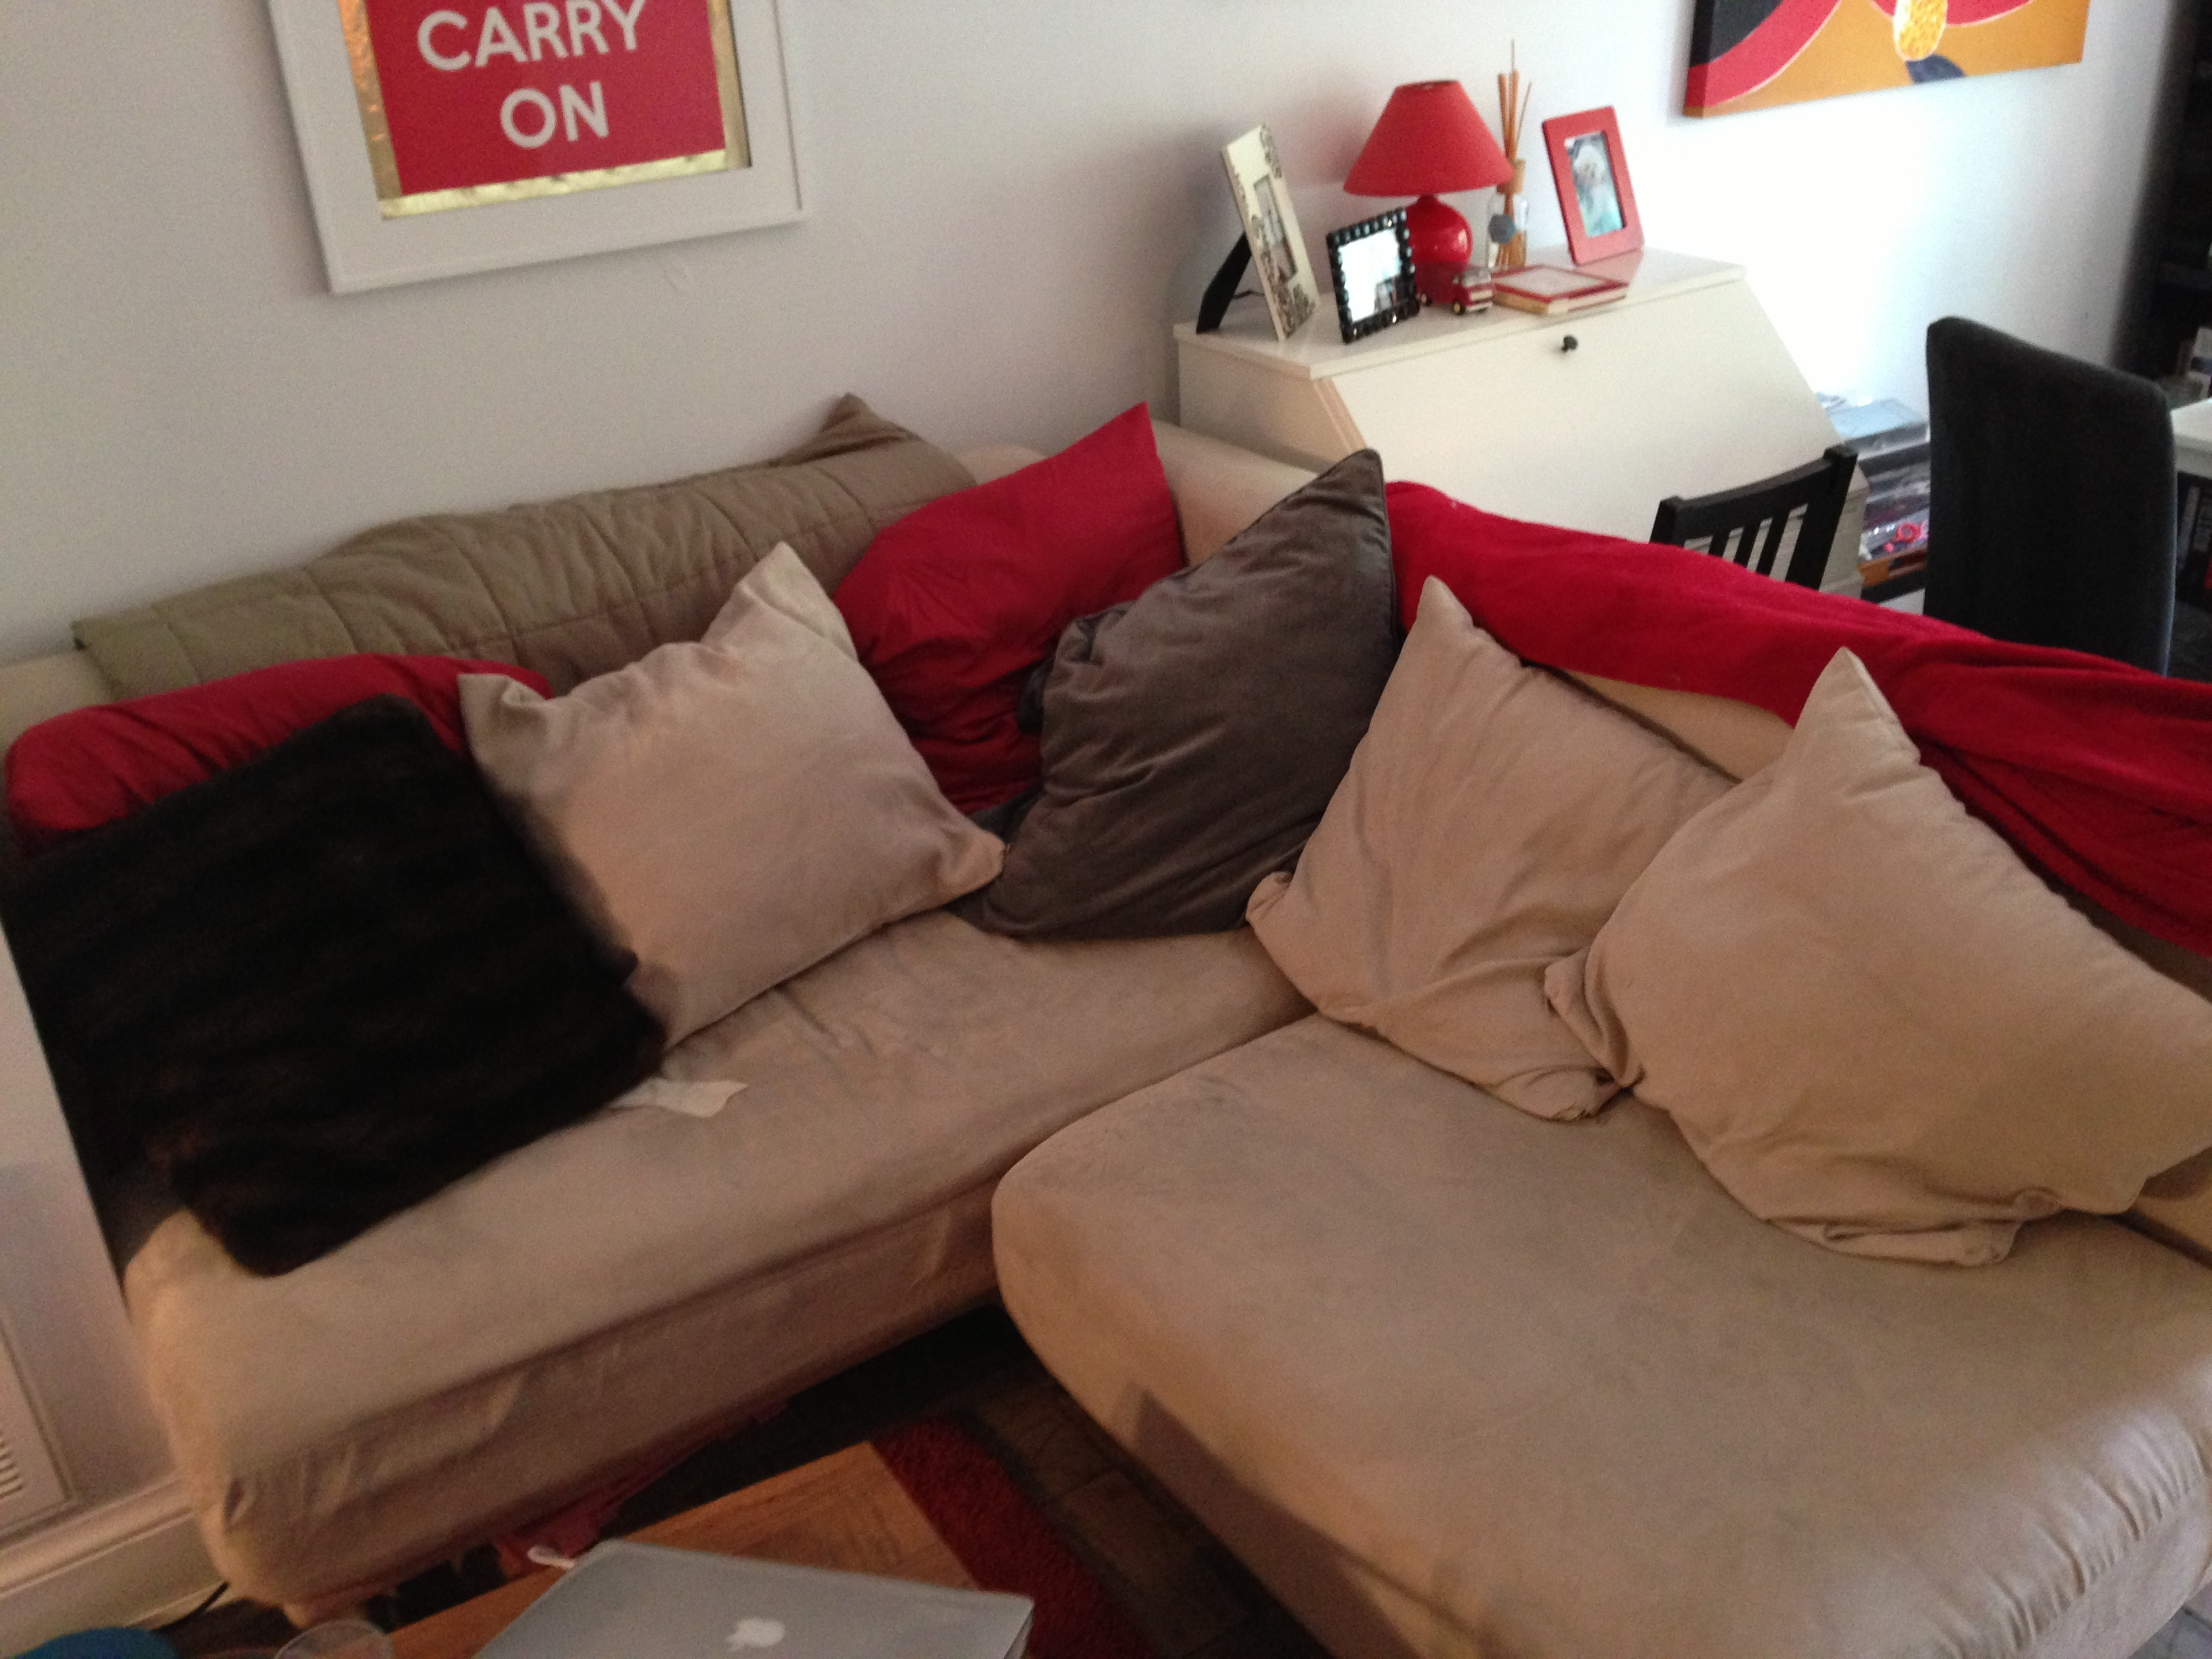 Sectional Sofa With Ottoman – $100 | Gently Used Furniture For Sale With Regard To Used Sectional Sofas (View 4 of 10)